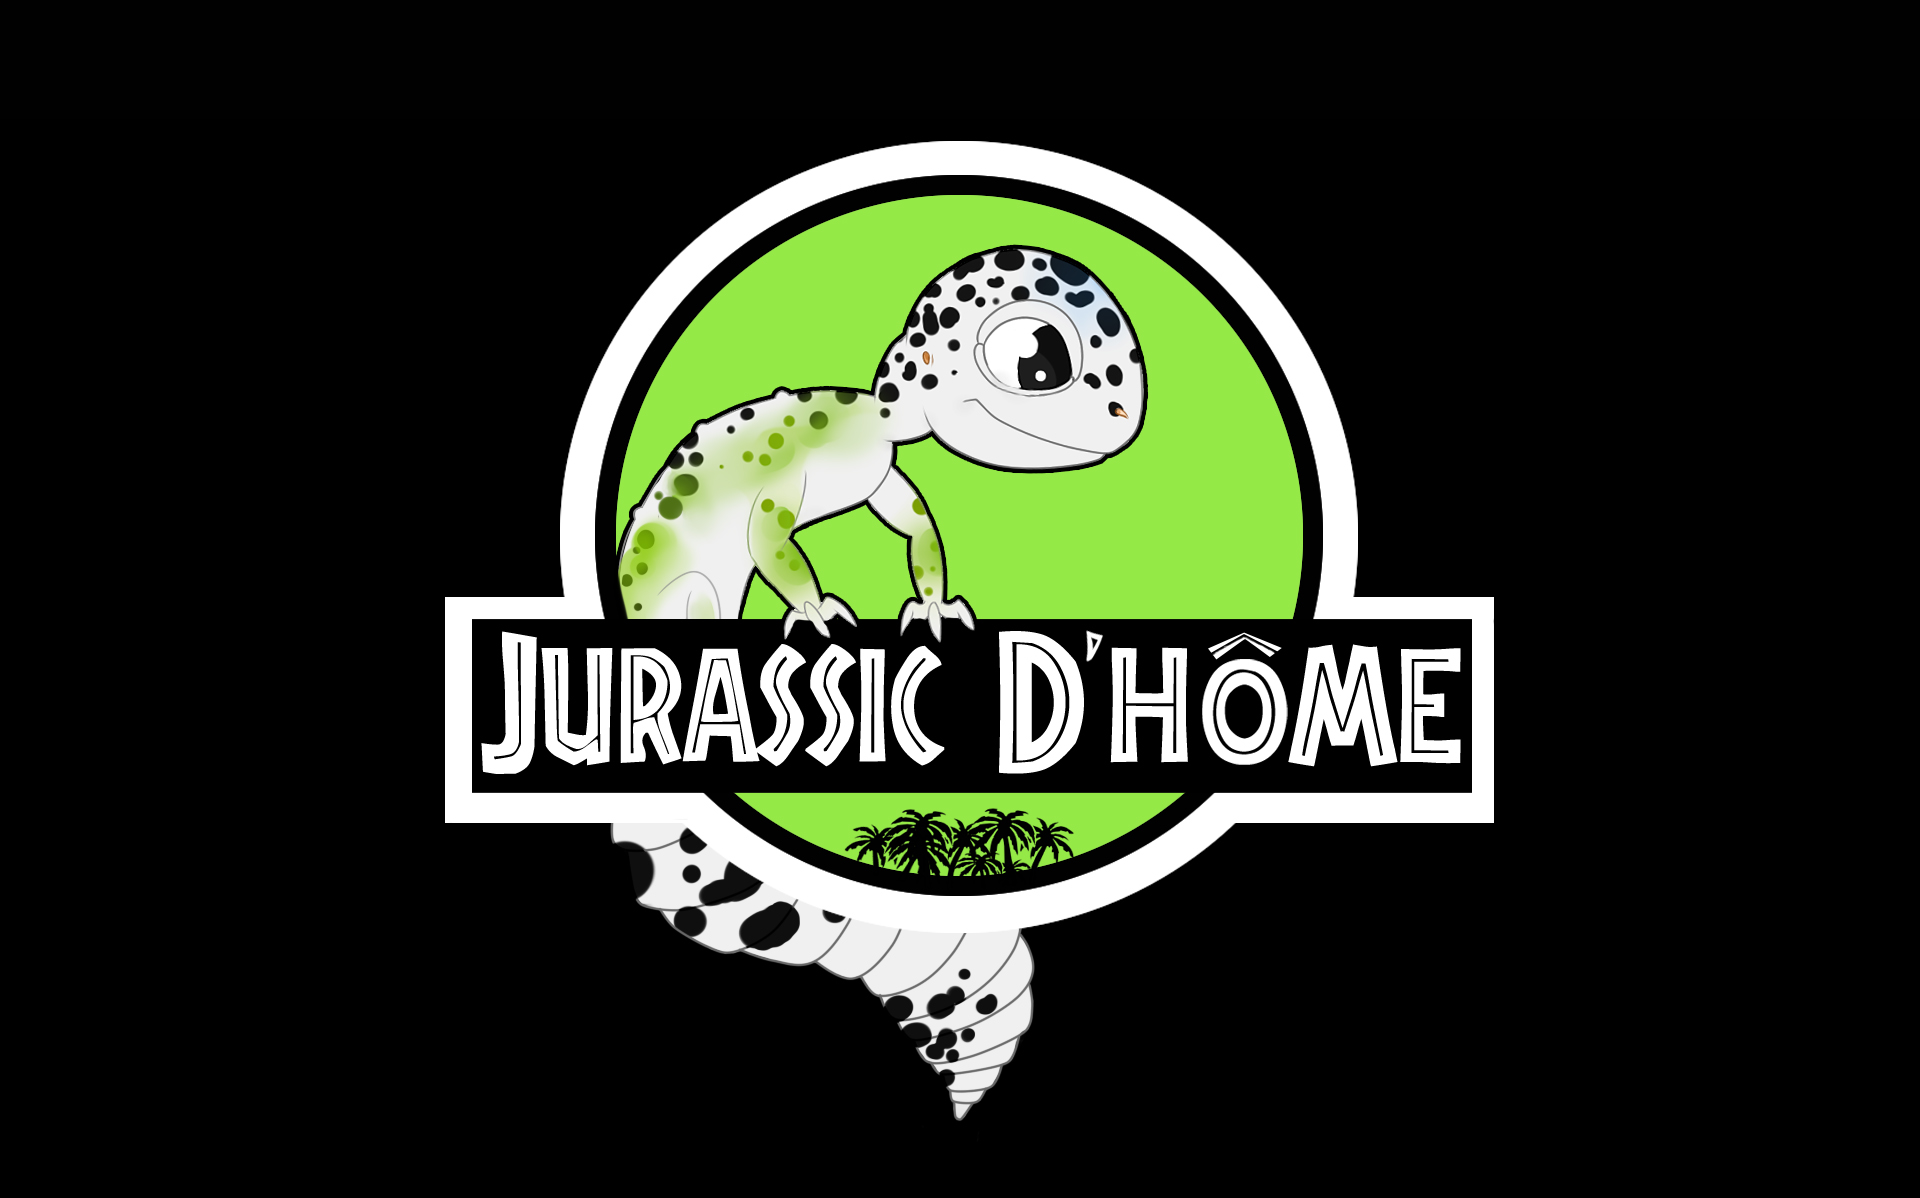 jurassic_dhome_maxence_bouyer